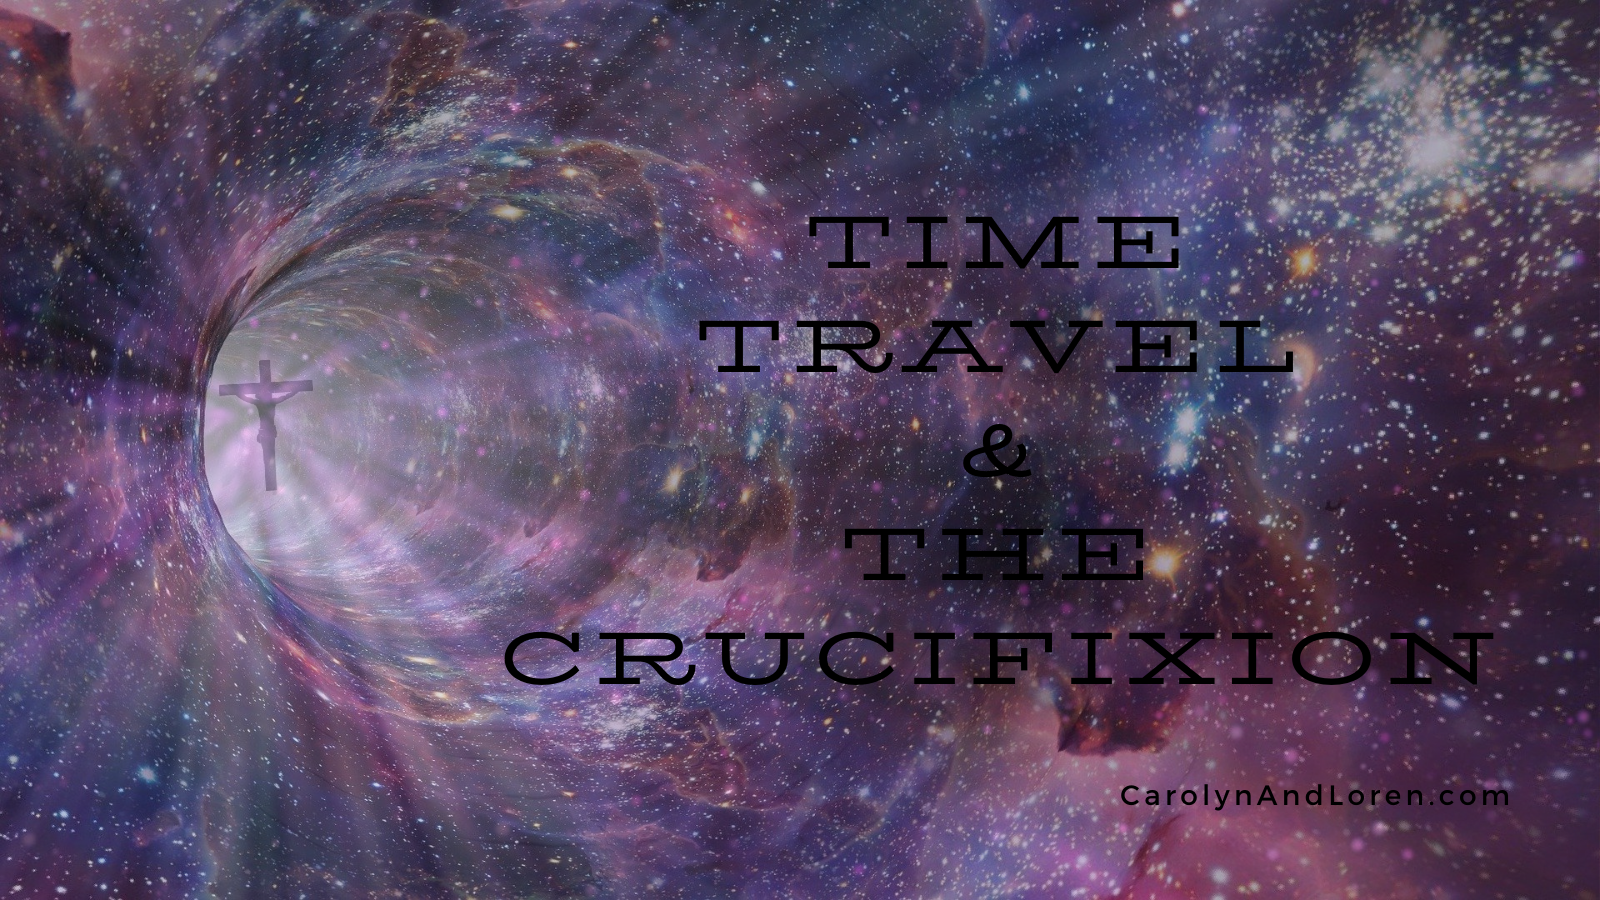 """Time Travel and the Crucifixion,"" CarolynAndLoren.com"